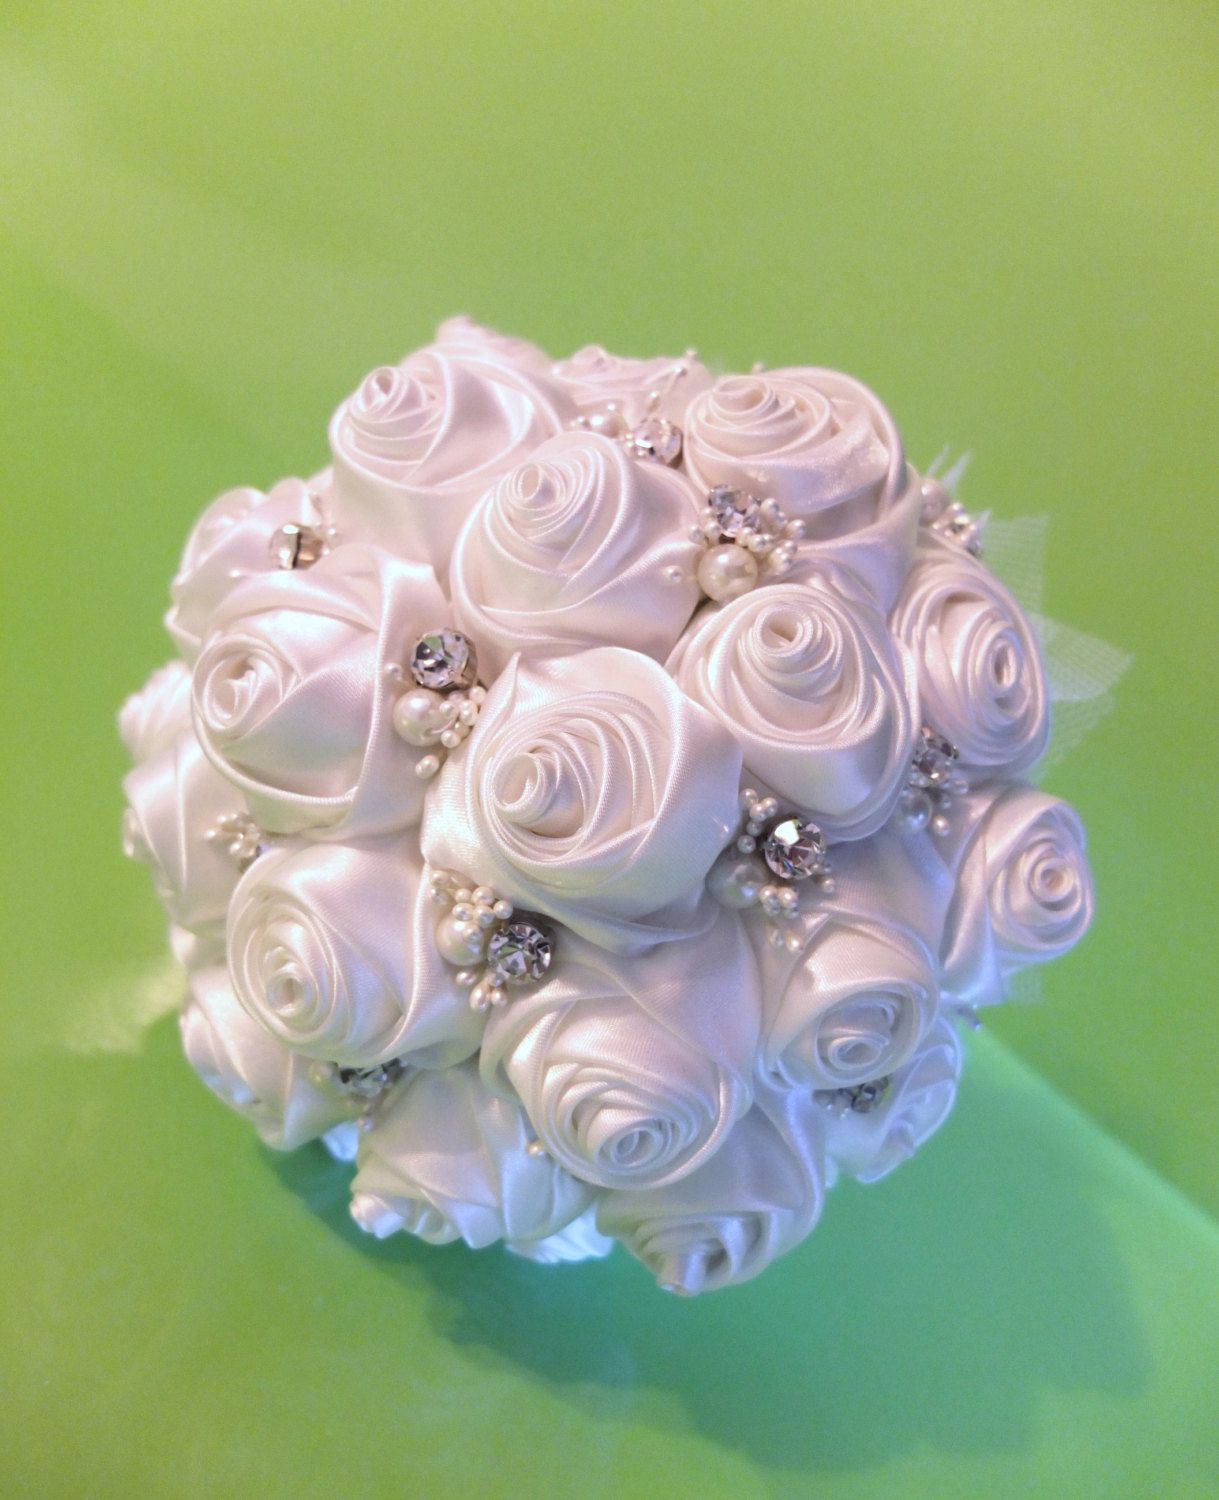 Handmade Ribbon Rose Bouquet White Rose Accented With Rhinestone